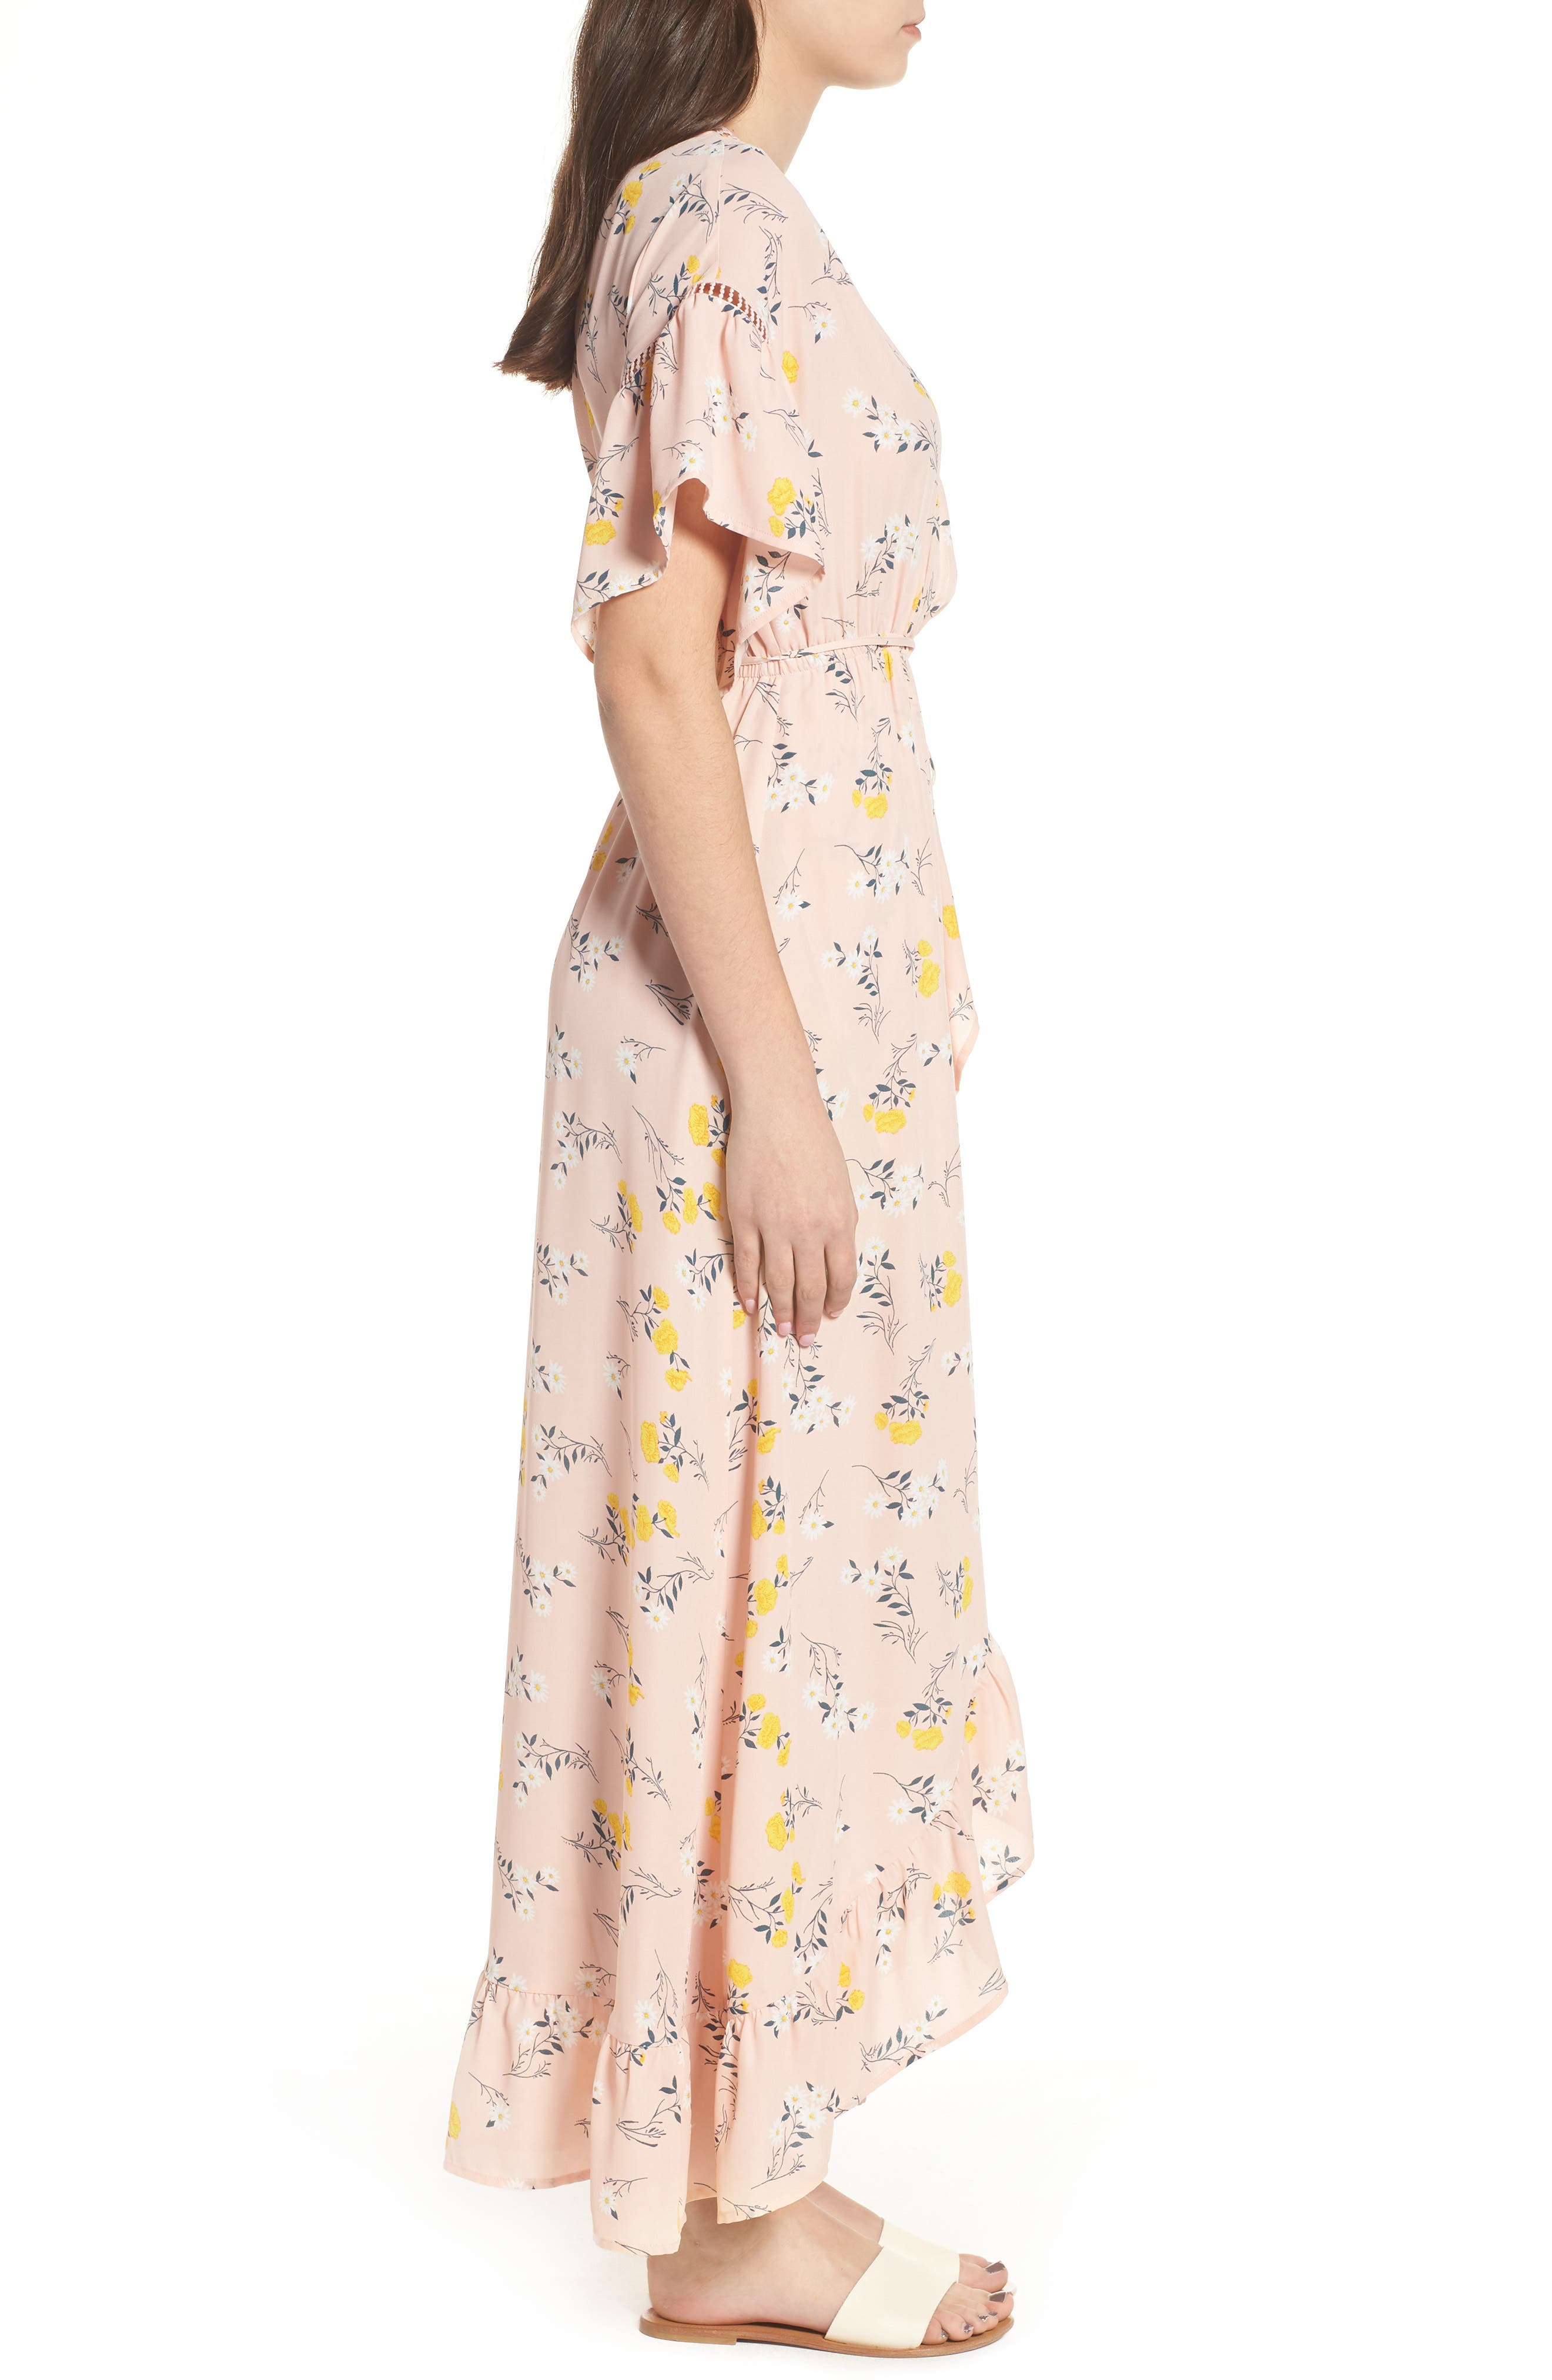 Romance Floral Wrap Style Dress,                             Alternate thumbnail 3, color,                             650